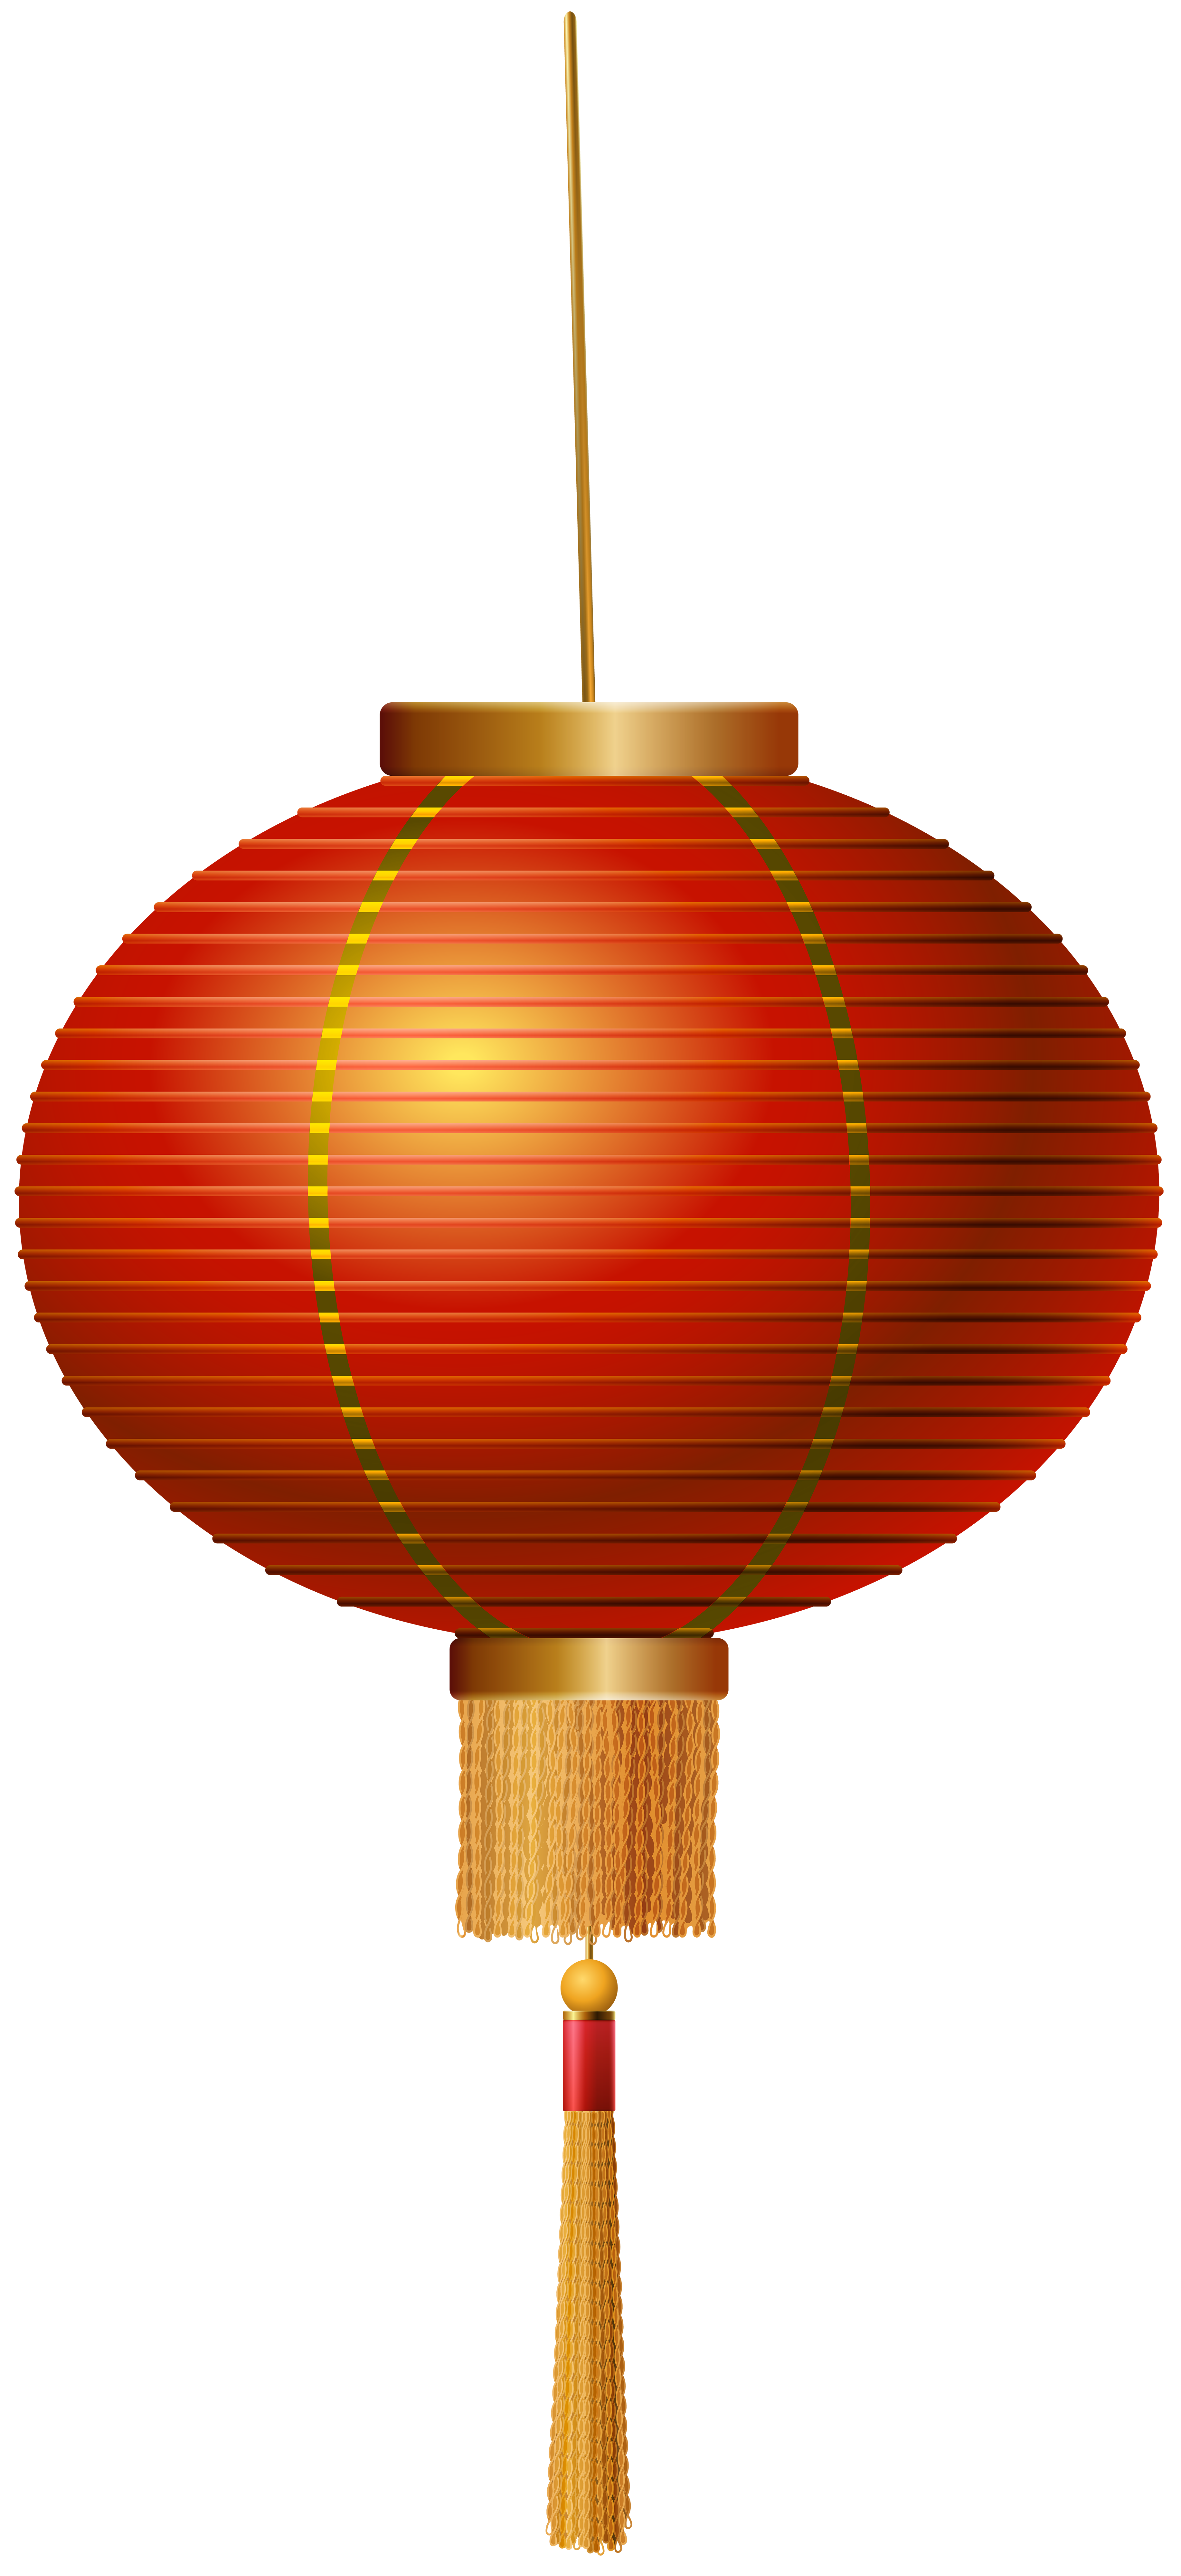 3668x8000 Red Chinese Lantern Png Clip Art